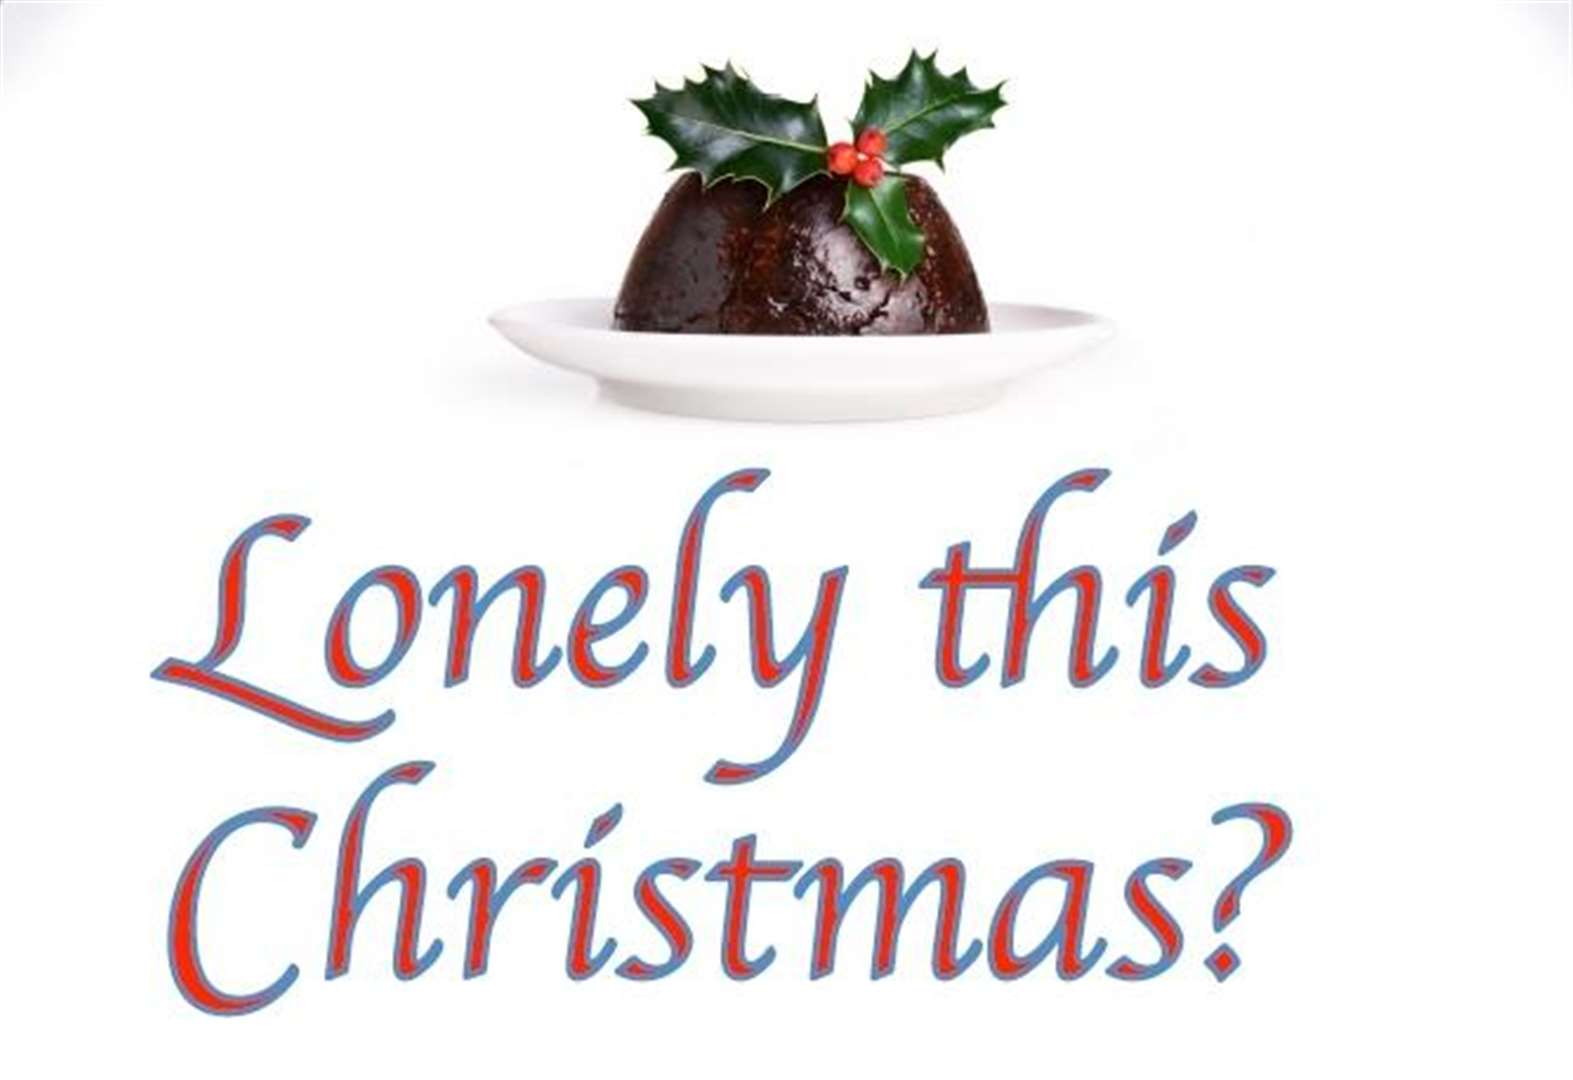 Lonely are offered a Christmas lunch invite